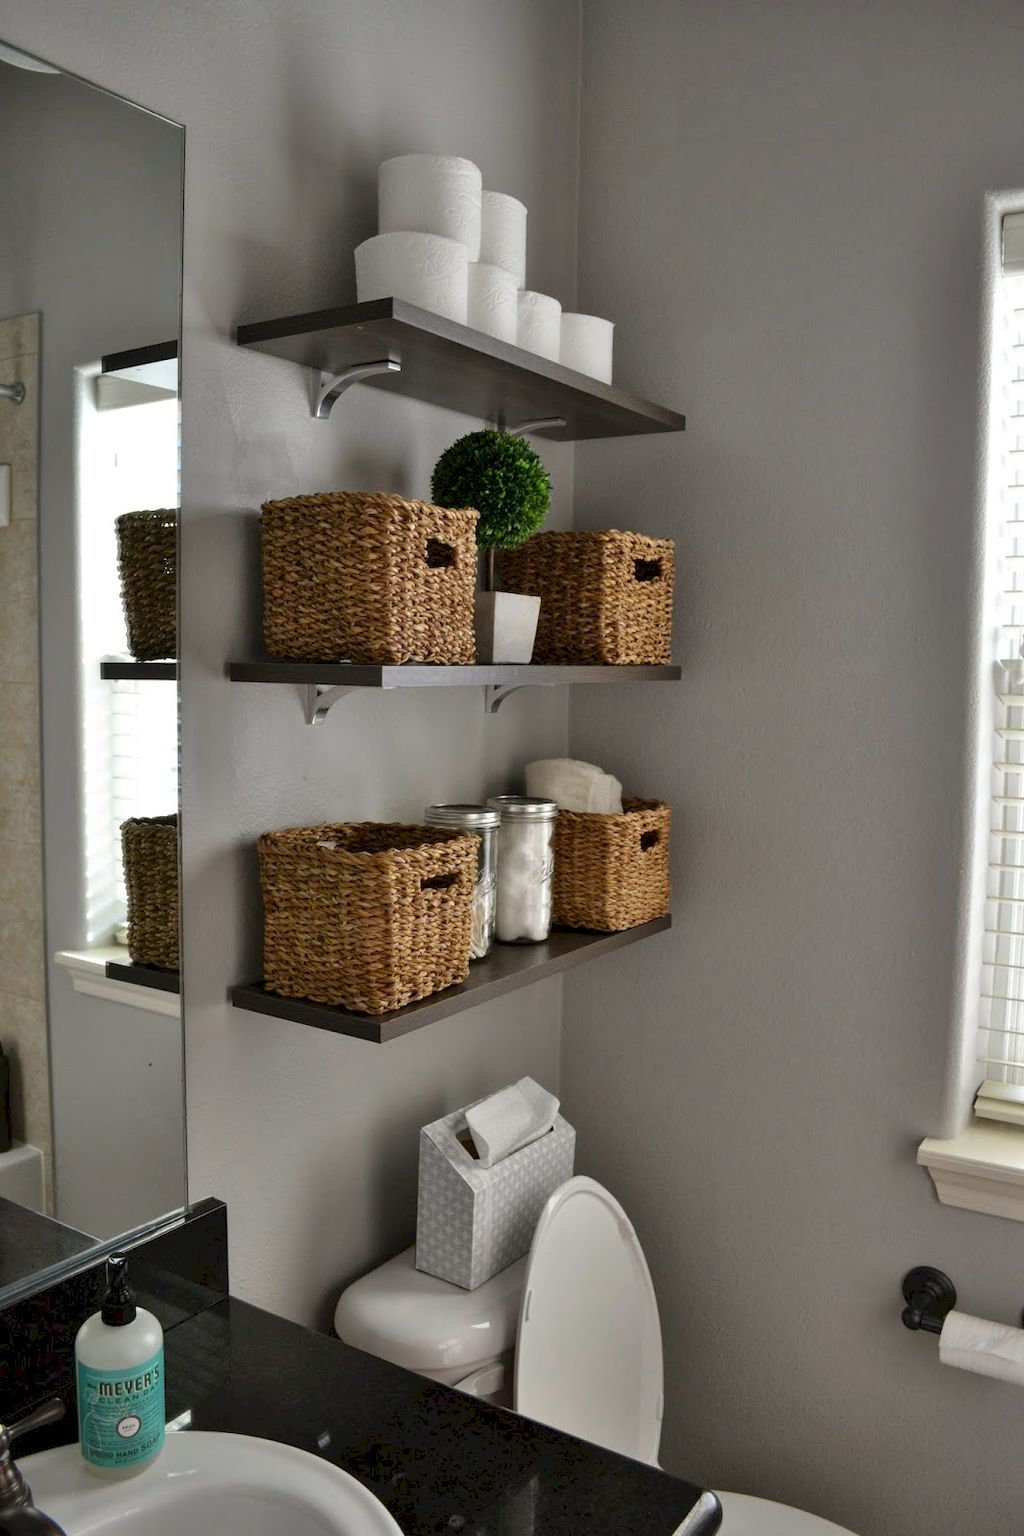 50 quick and easy tips bathroom organization ideas for Fast bathroom remodel